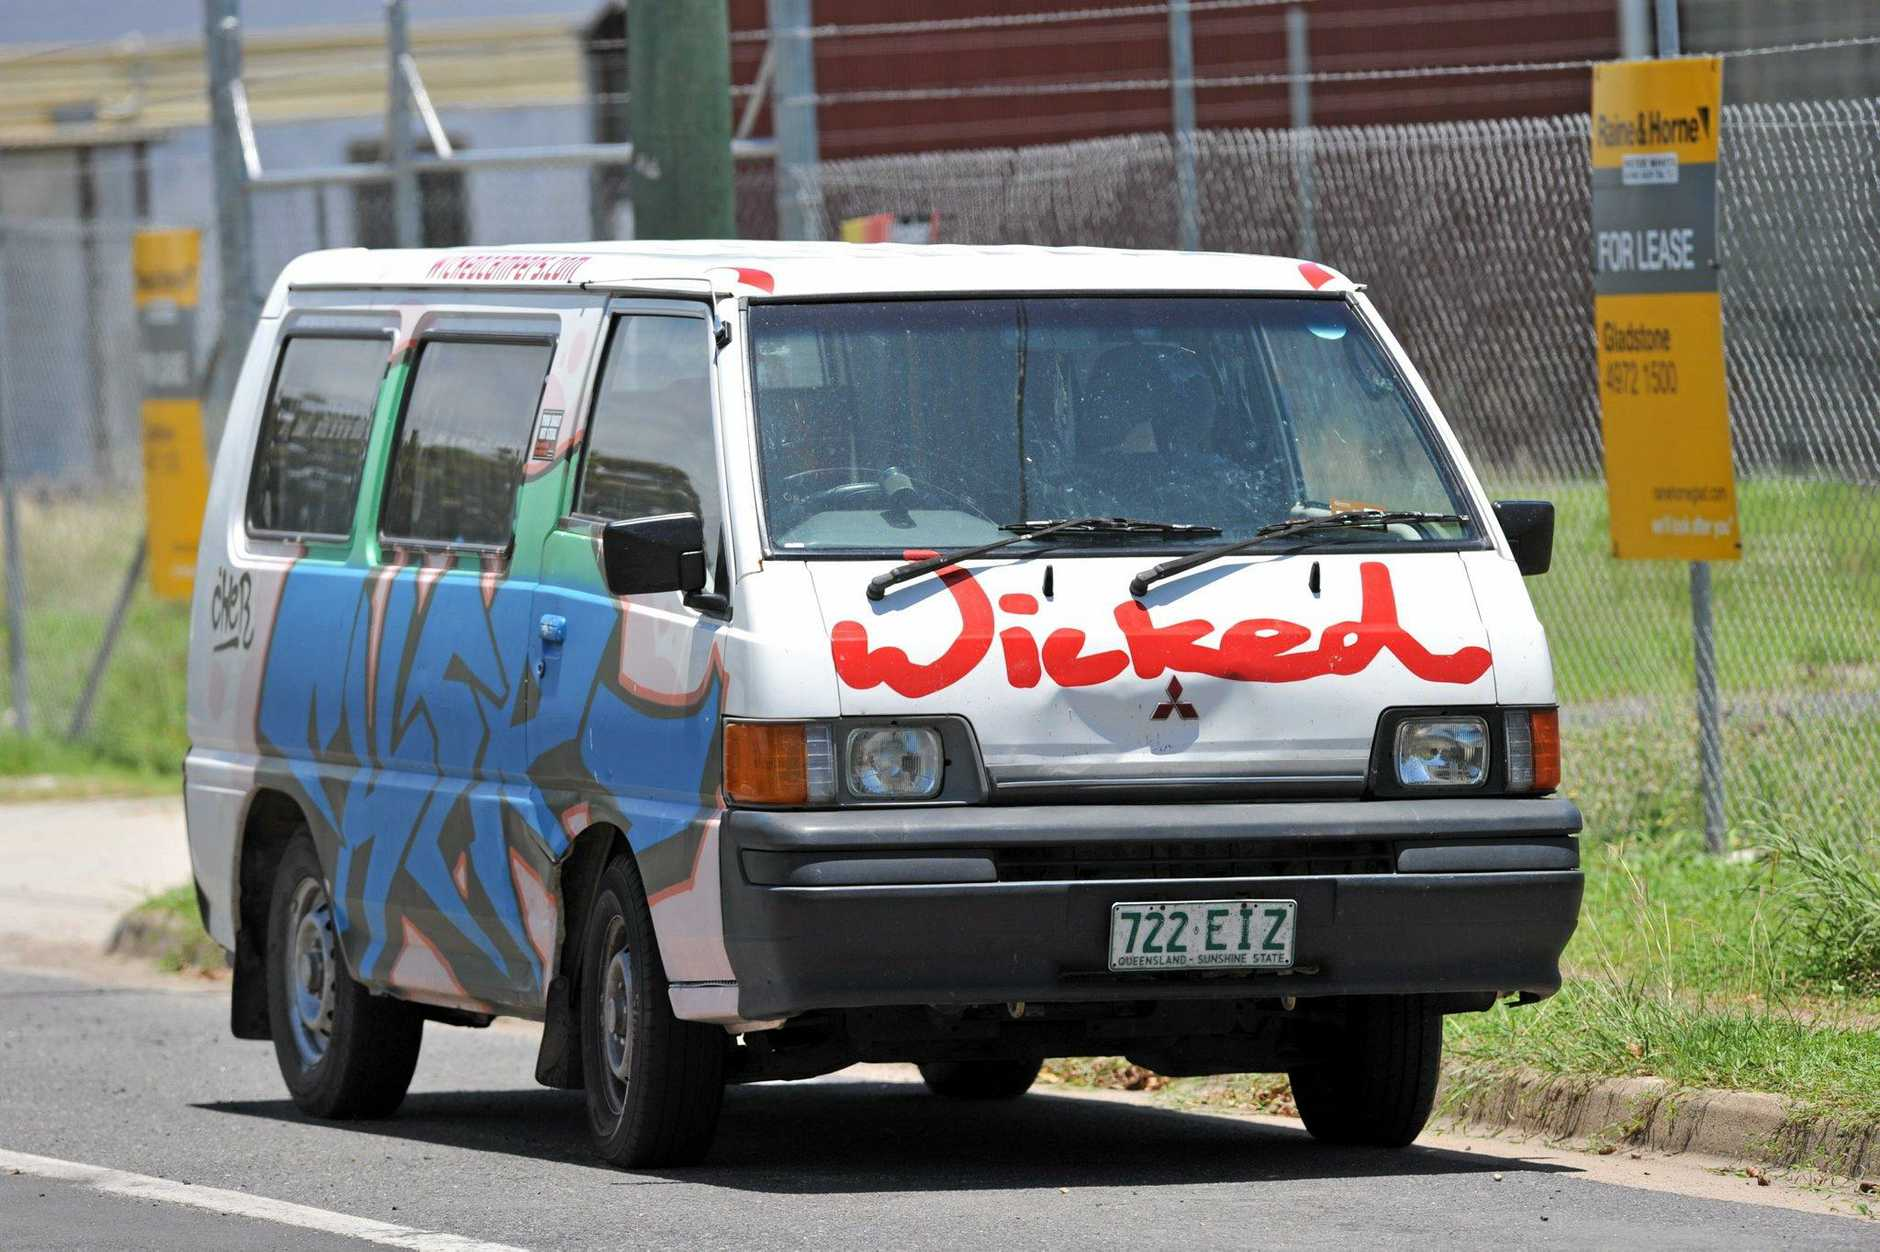 OFFENSIVE SLOGANS: Coast councils lack the authority to fine offensive Wicked Campers like their New Zealand counterparts.